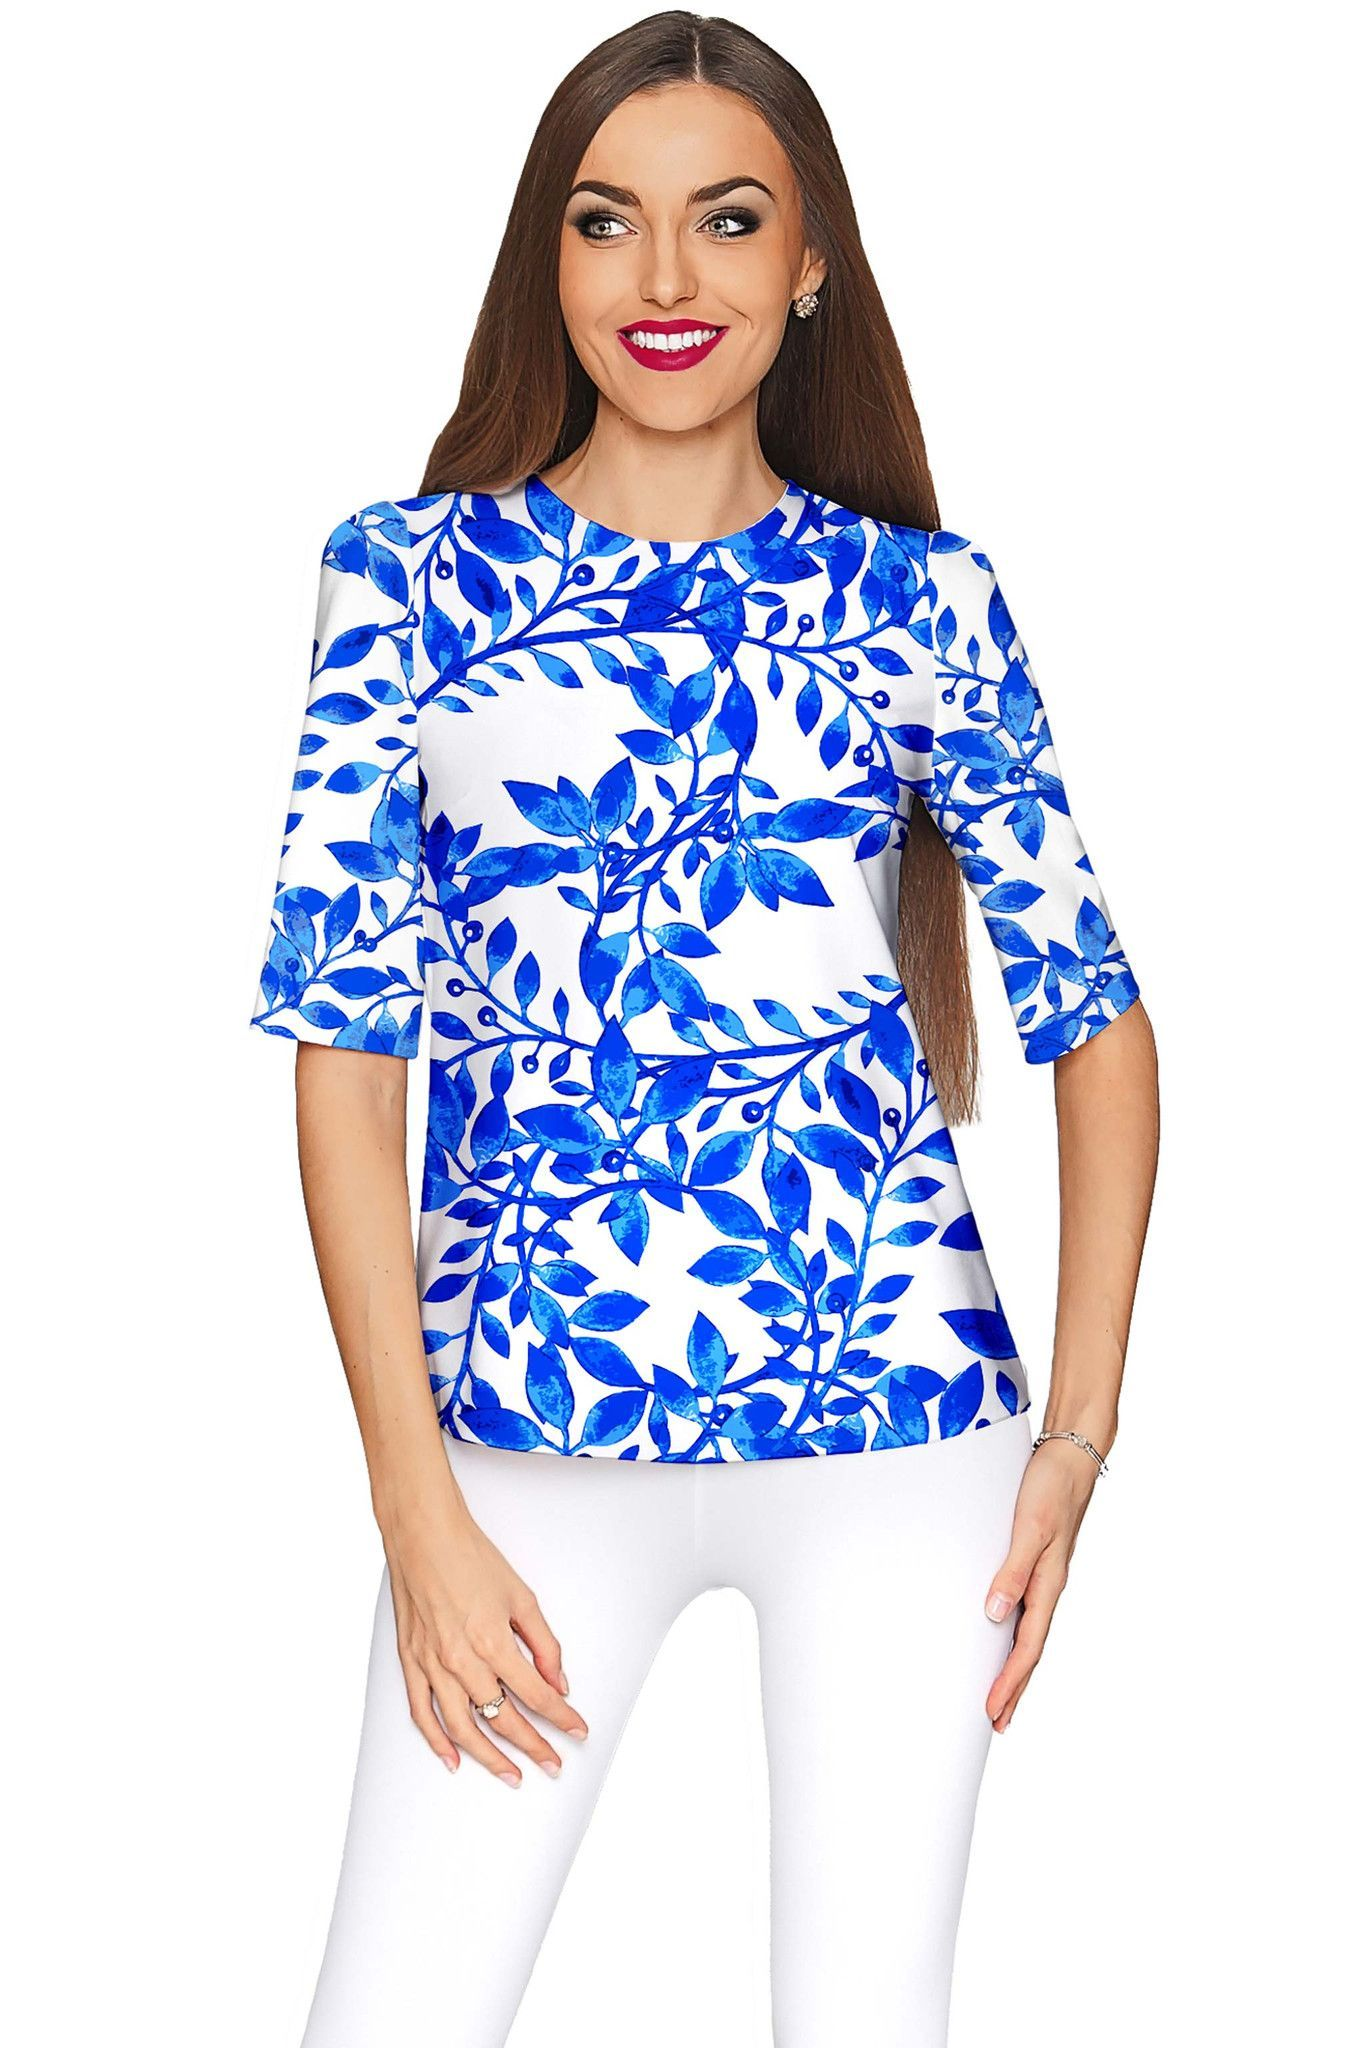 976f465d948 Whimsy Sophia White Blue Print Sleeved Party Top - Women | Products ...